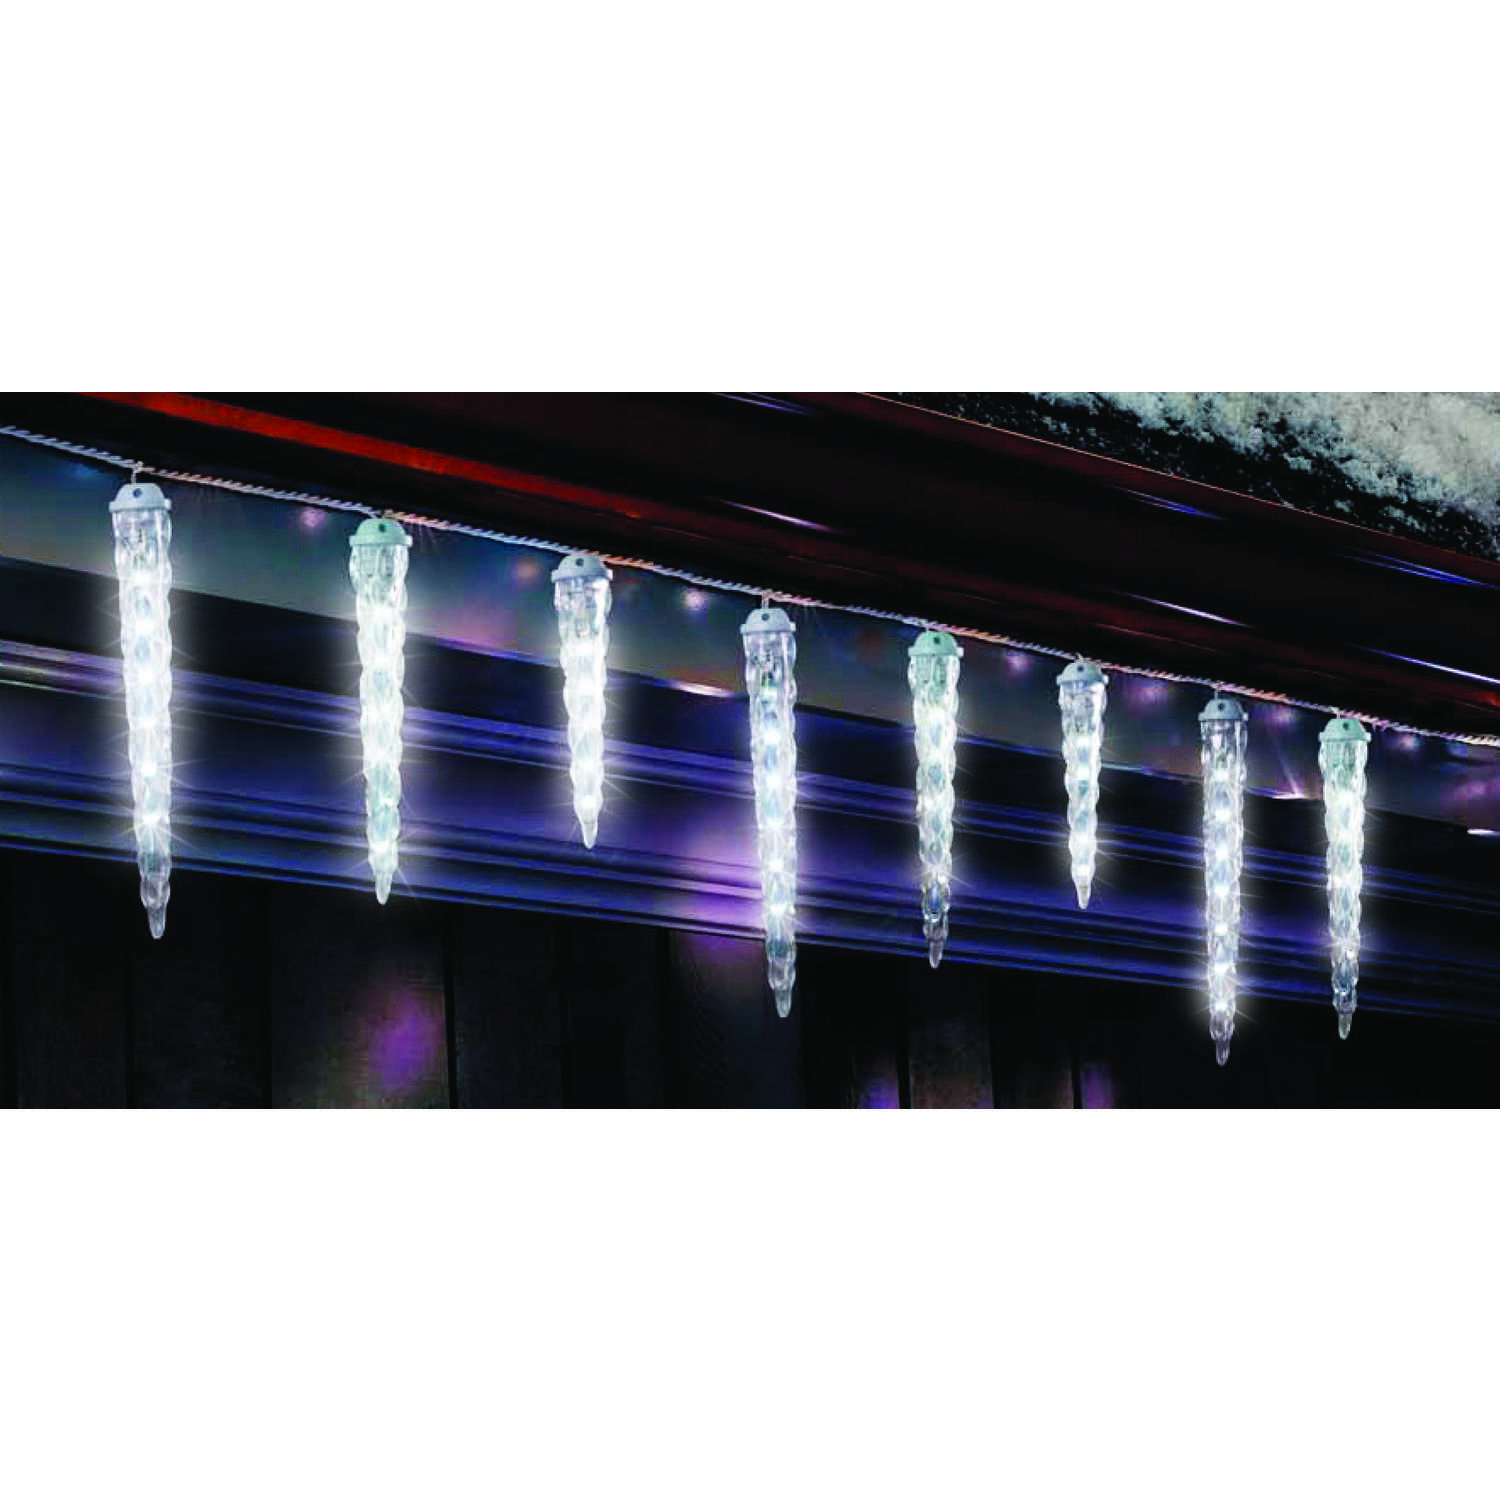 Celebrations  LED  Melting Icicle  Light Set  Warm White  9 ft. 10 lights